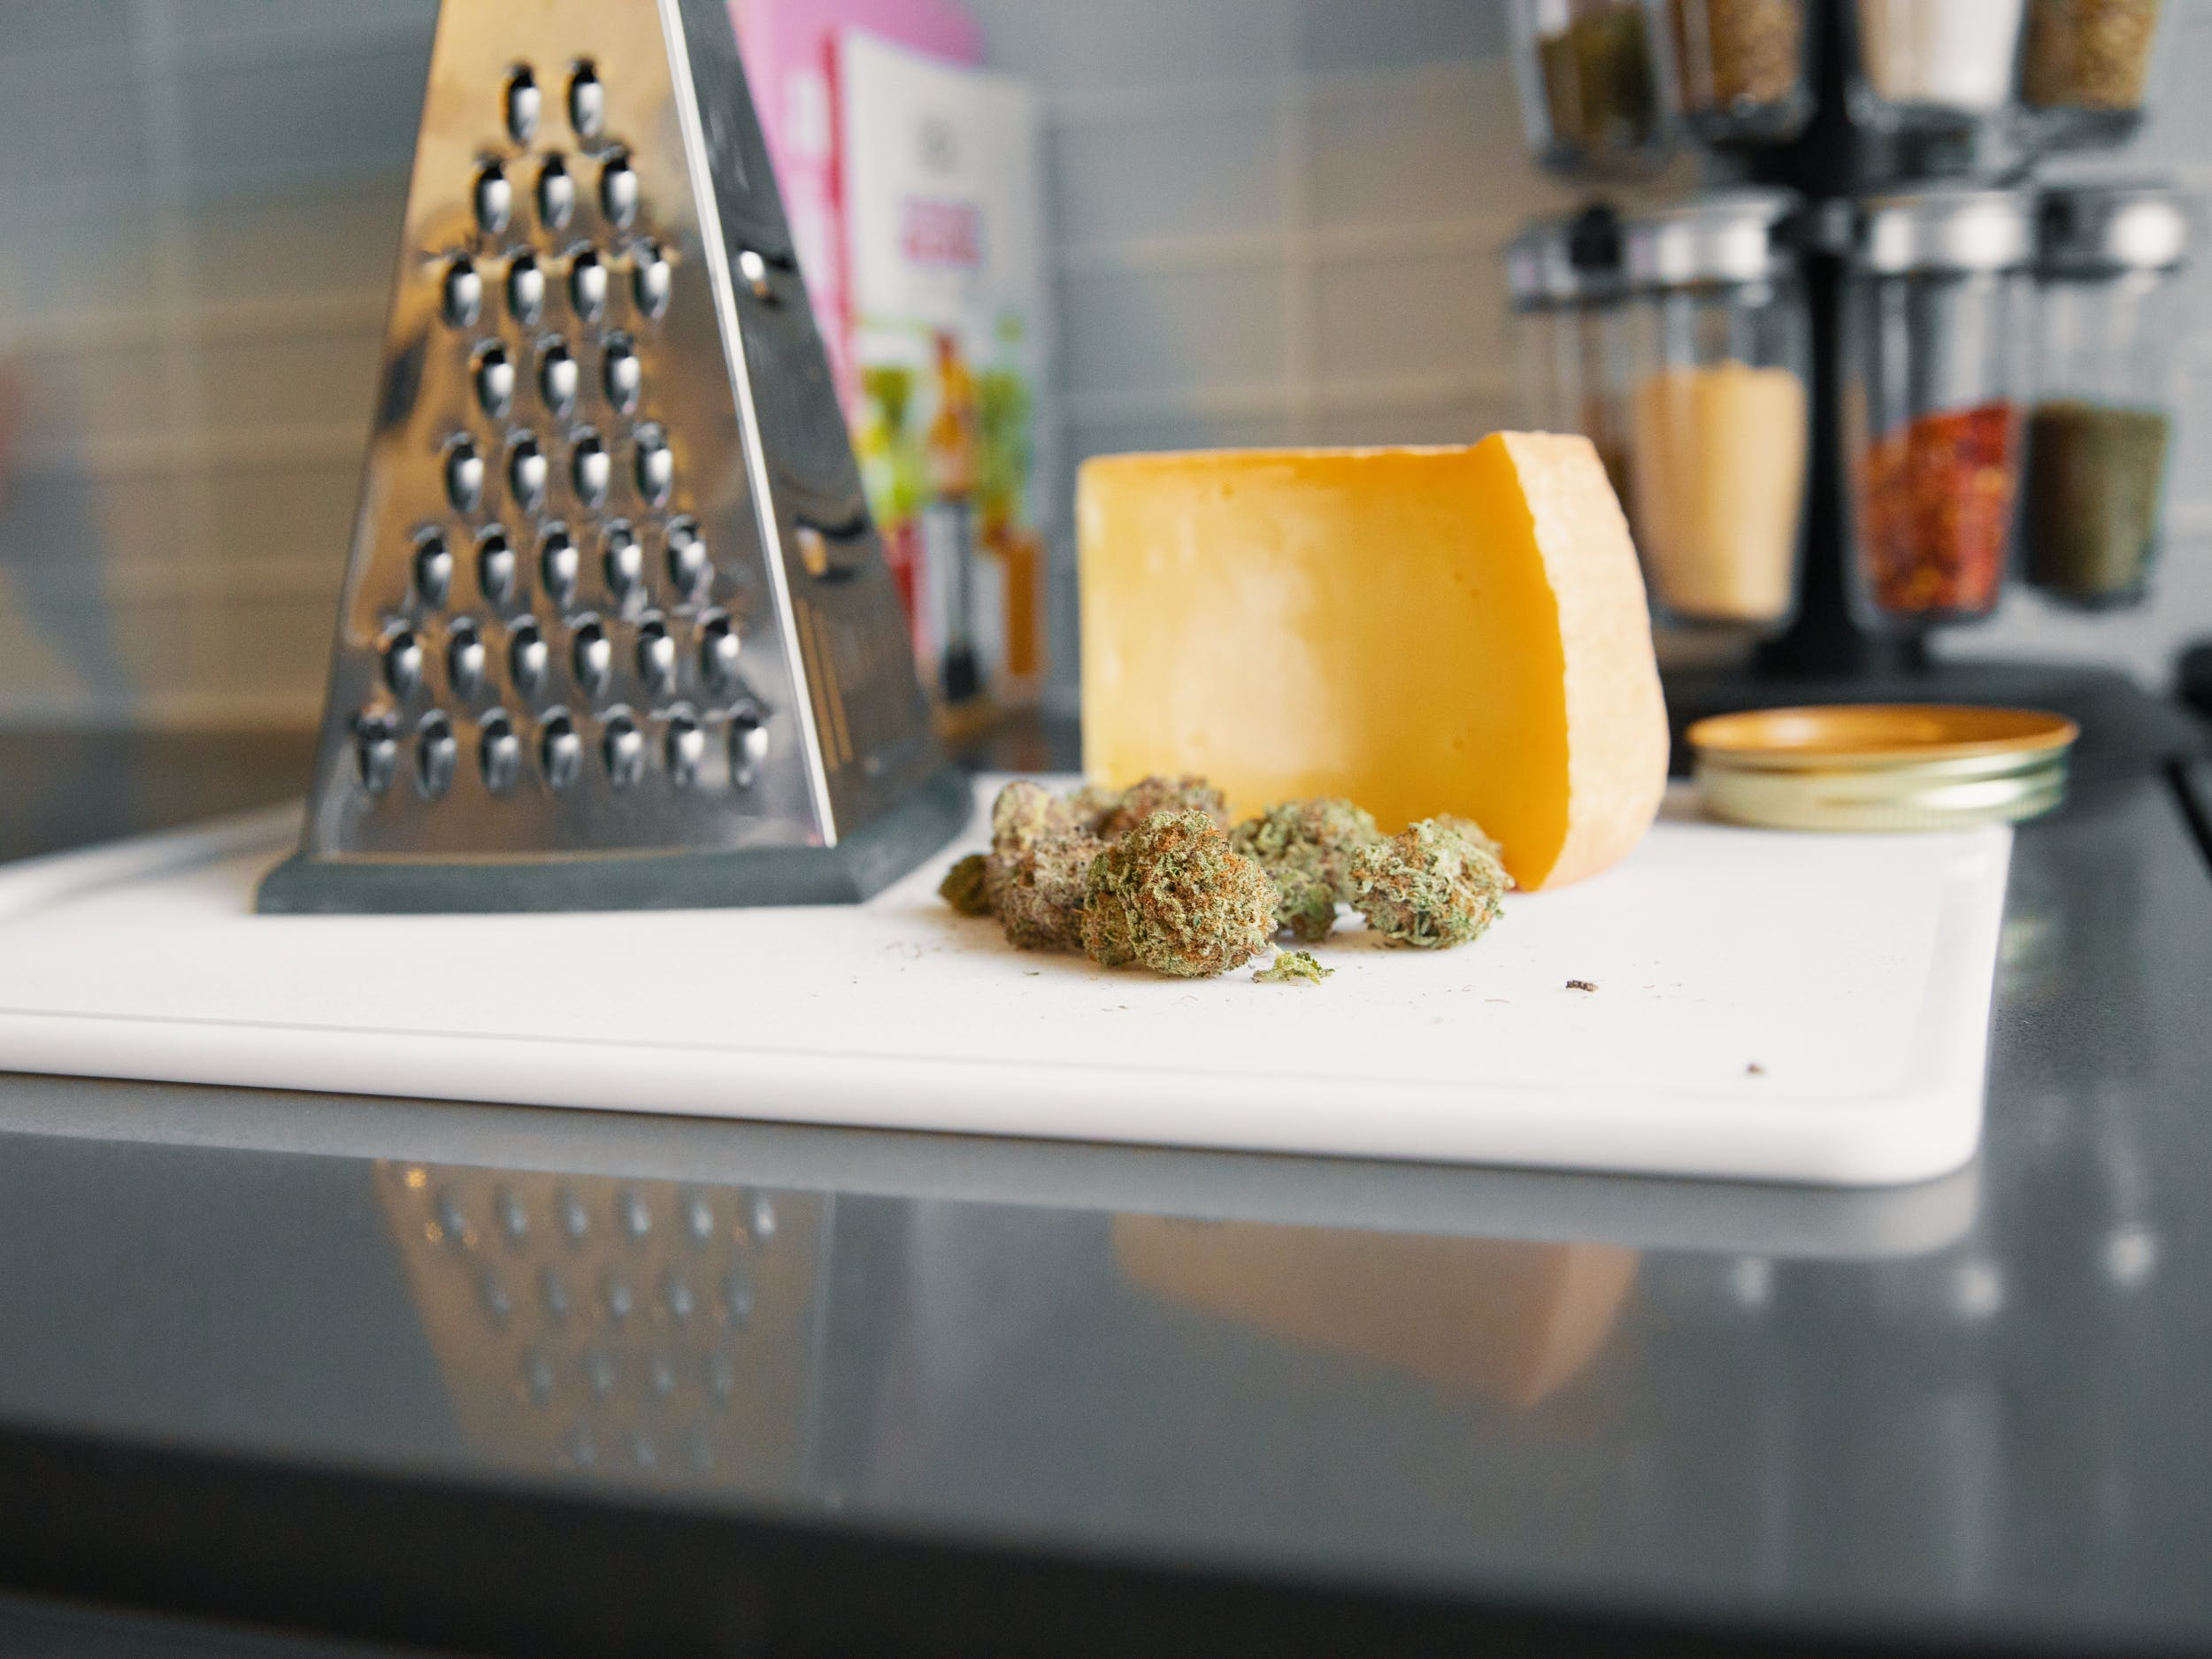 How to Make A Grinder 1 In a Pinch? Heres How to Make a Grinder Thats Cheap and Quick